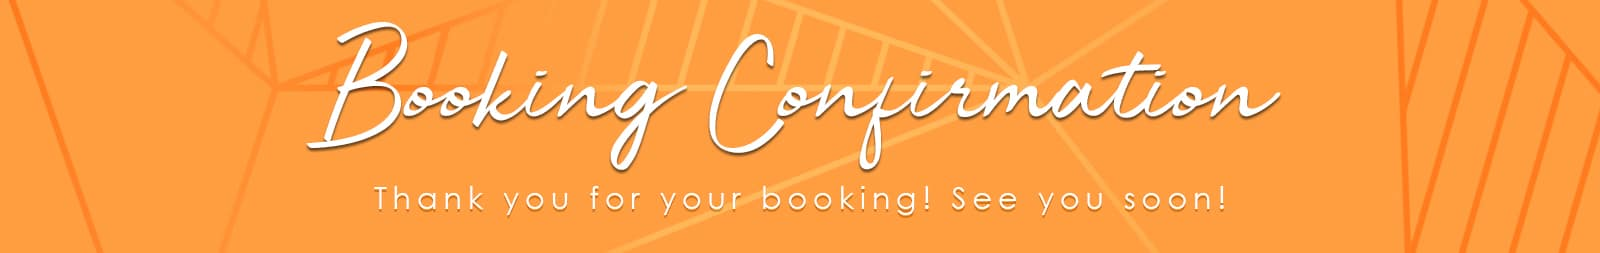 Booking Confirmation - The Tanning Shop